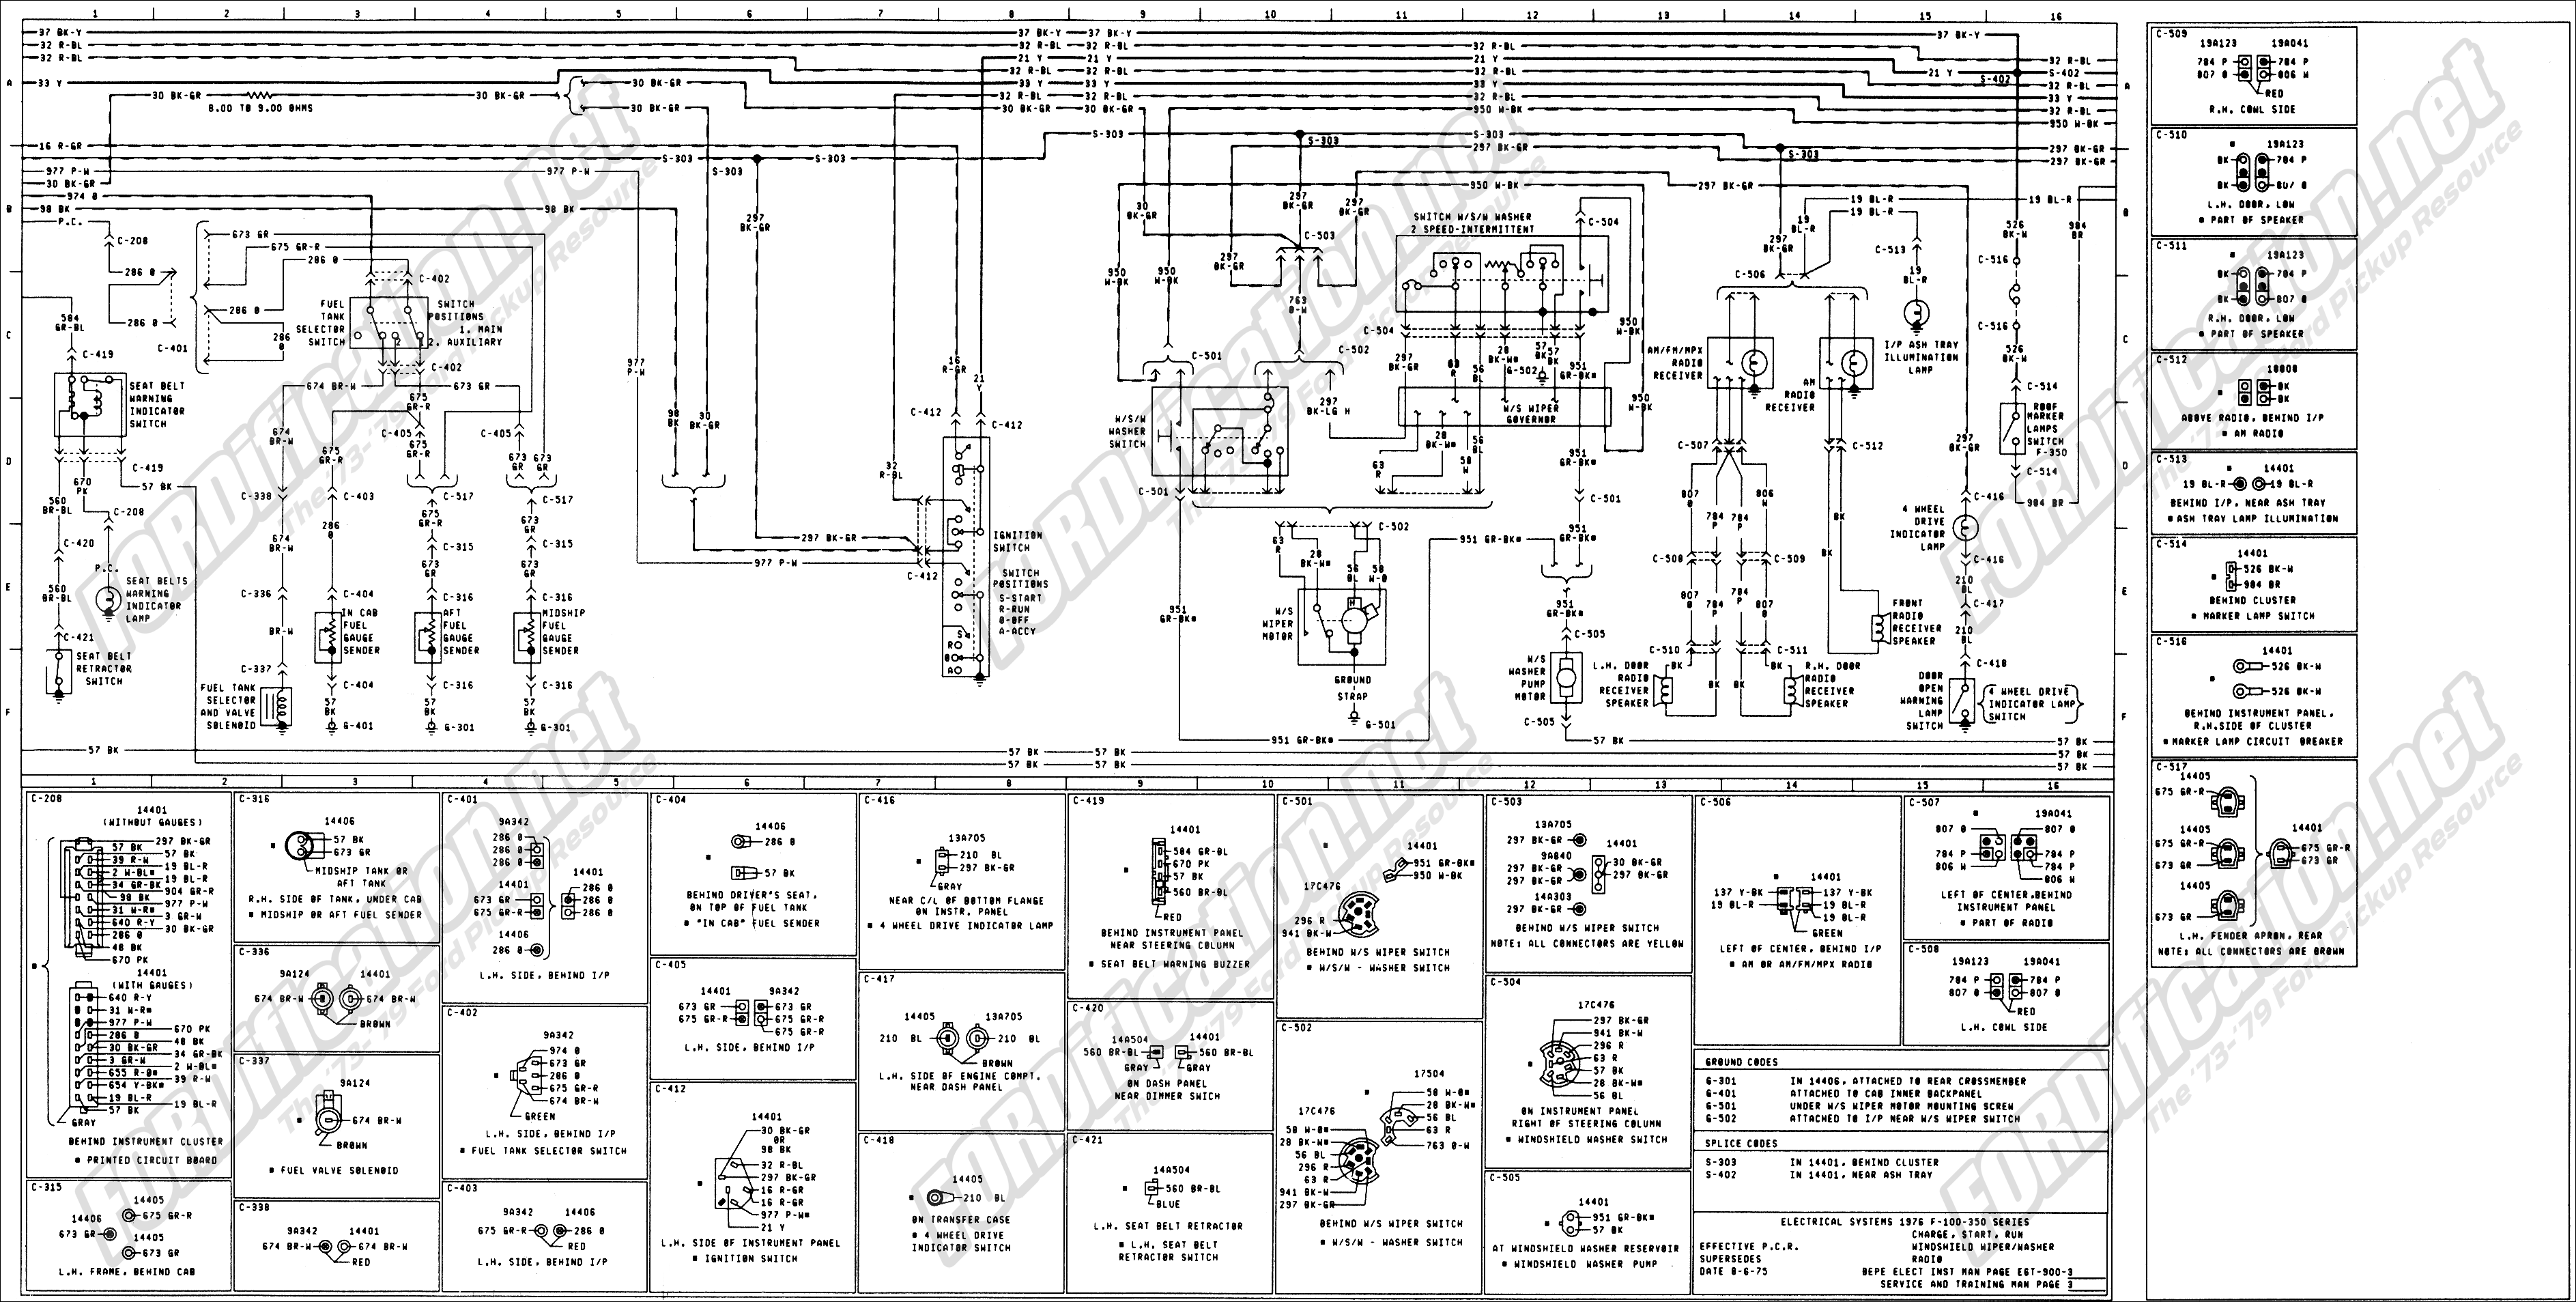 wiring_76master_3of9 1973 ford f250 wiring diagram ford f 150 starter wiring diagram ford f250 wiring diagram online at readyjetset.co